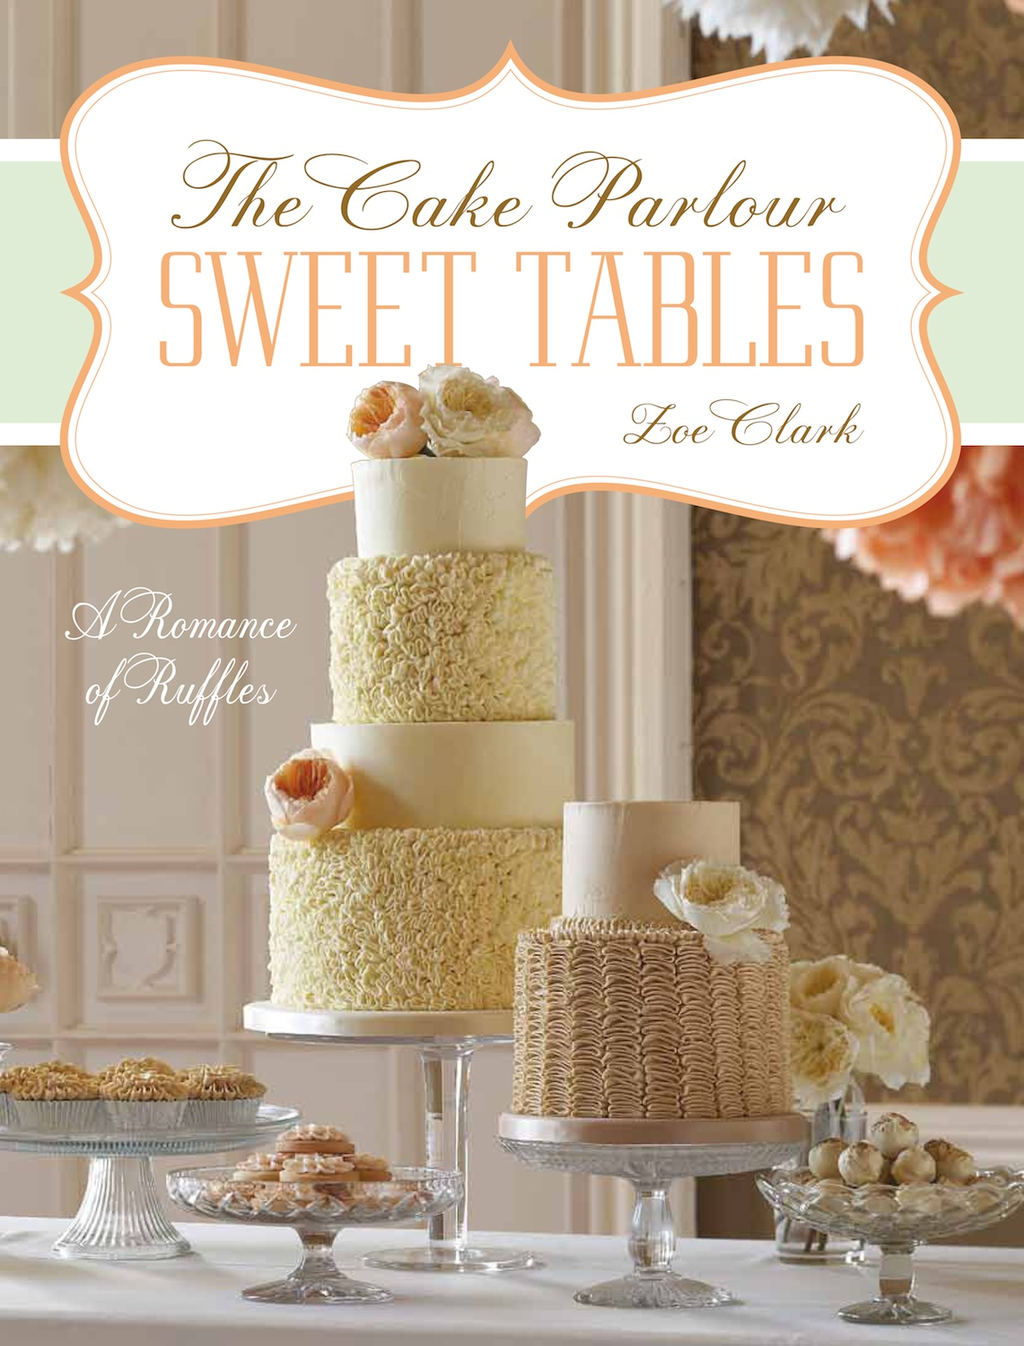 Sweet Tables - A Romance of Ruffles: A collection of sensuous desserts from Zoe Clark's The Cake Parlour Sweet Tables